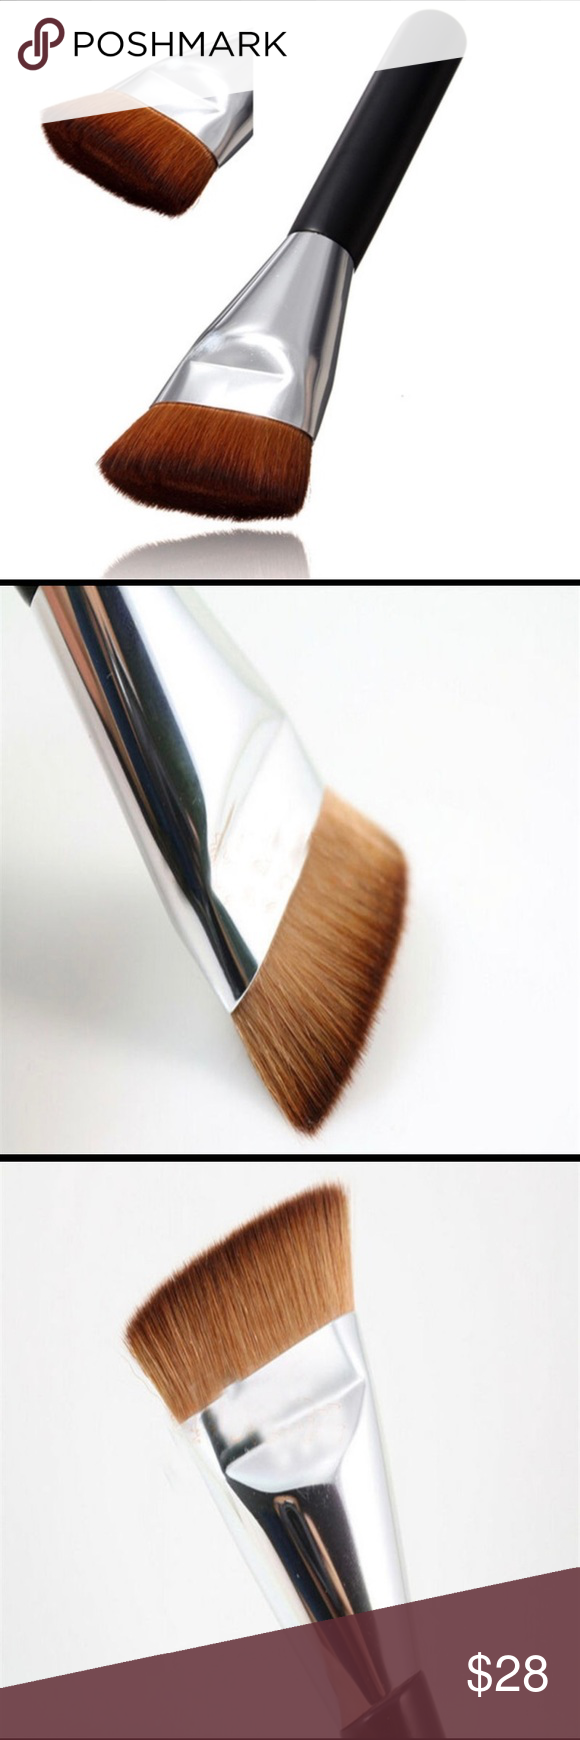 FLAT CONTOURING BRUSH Boutique Contour brush, Things to